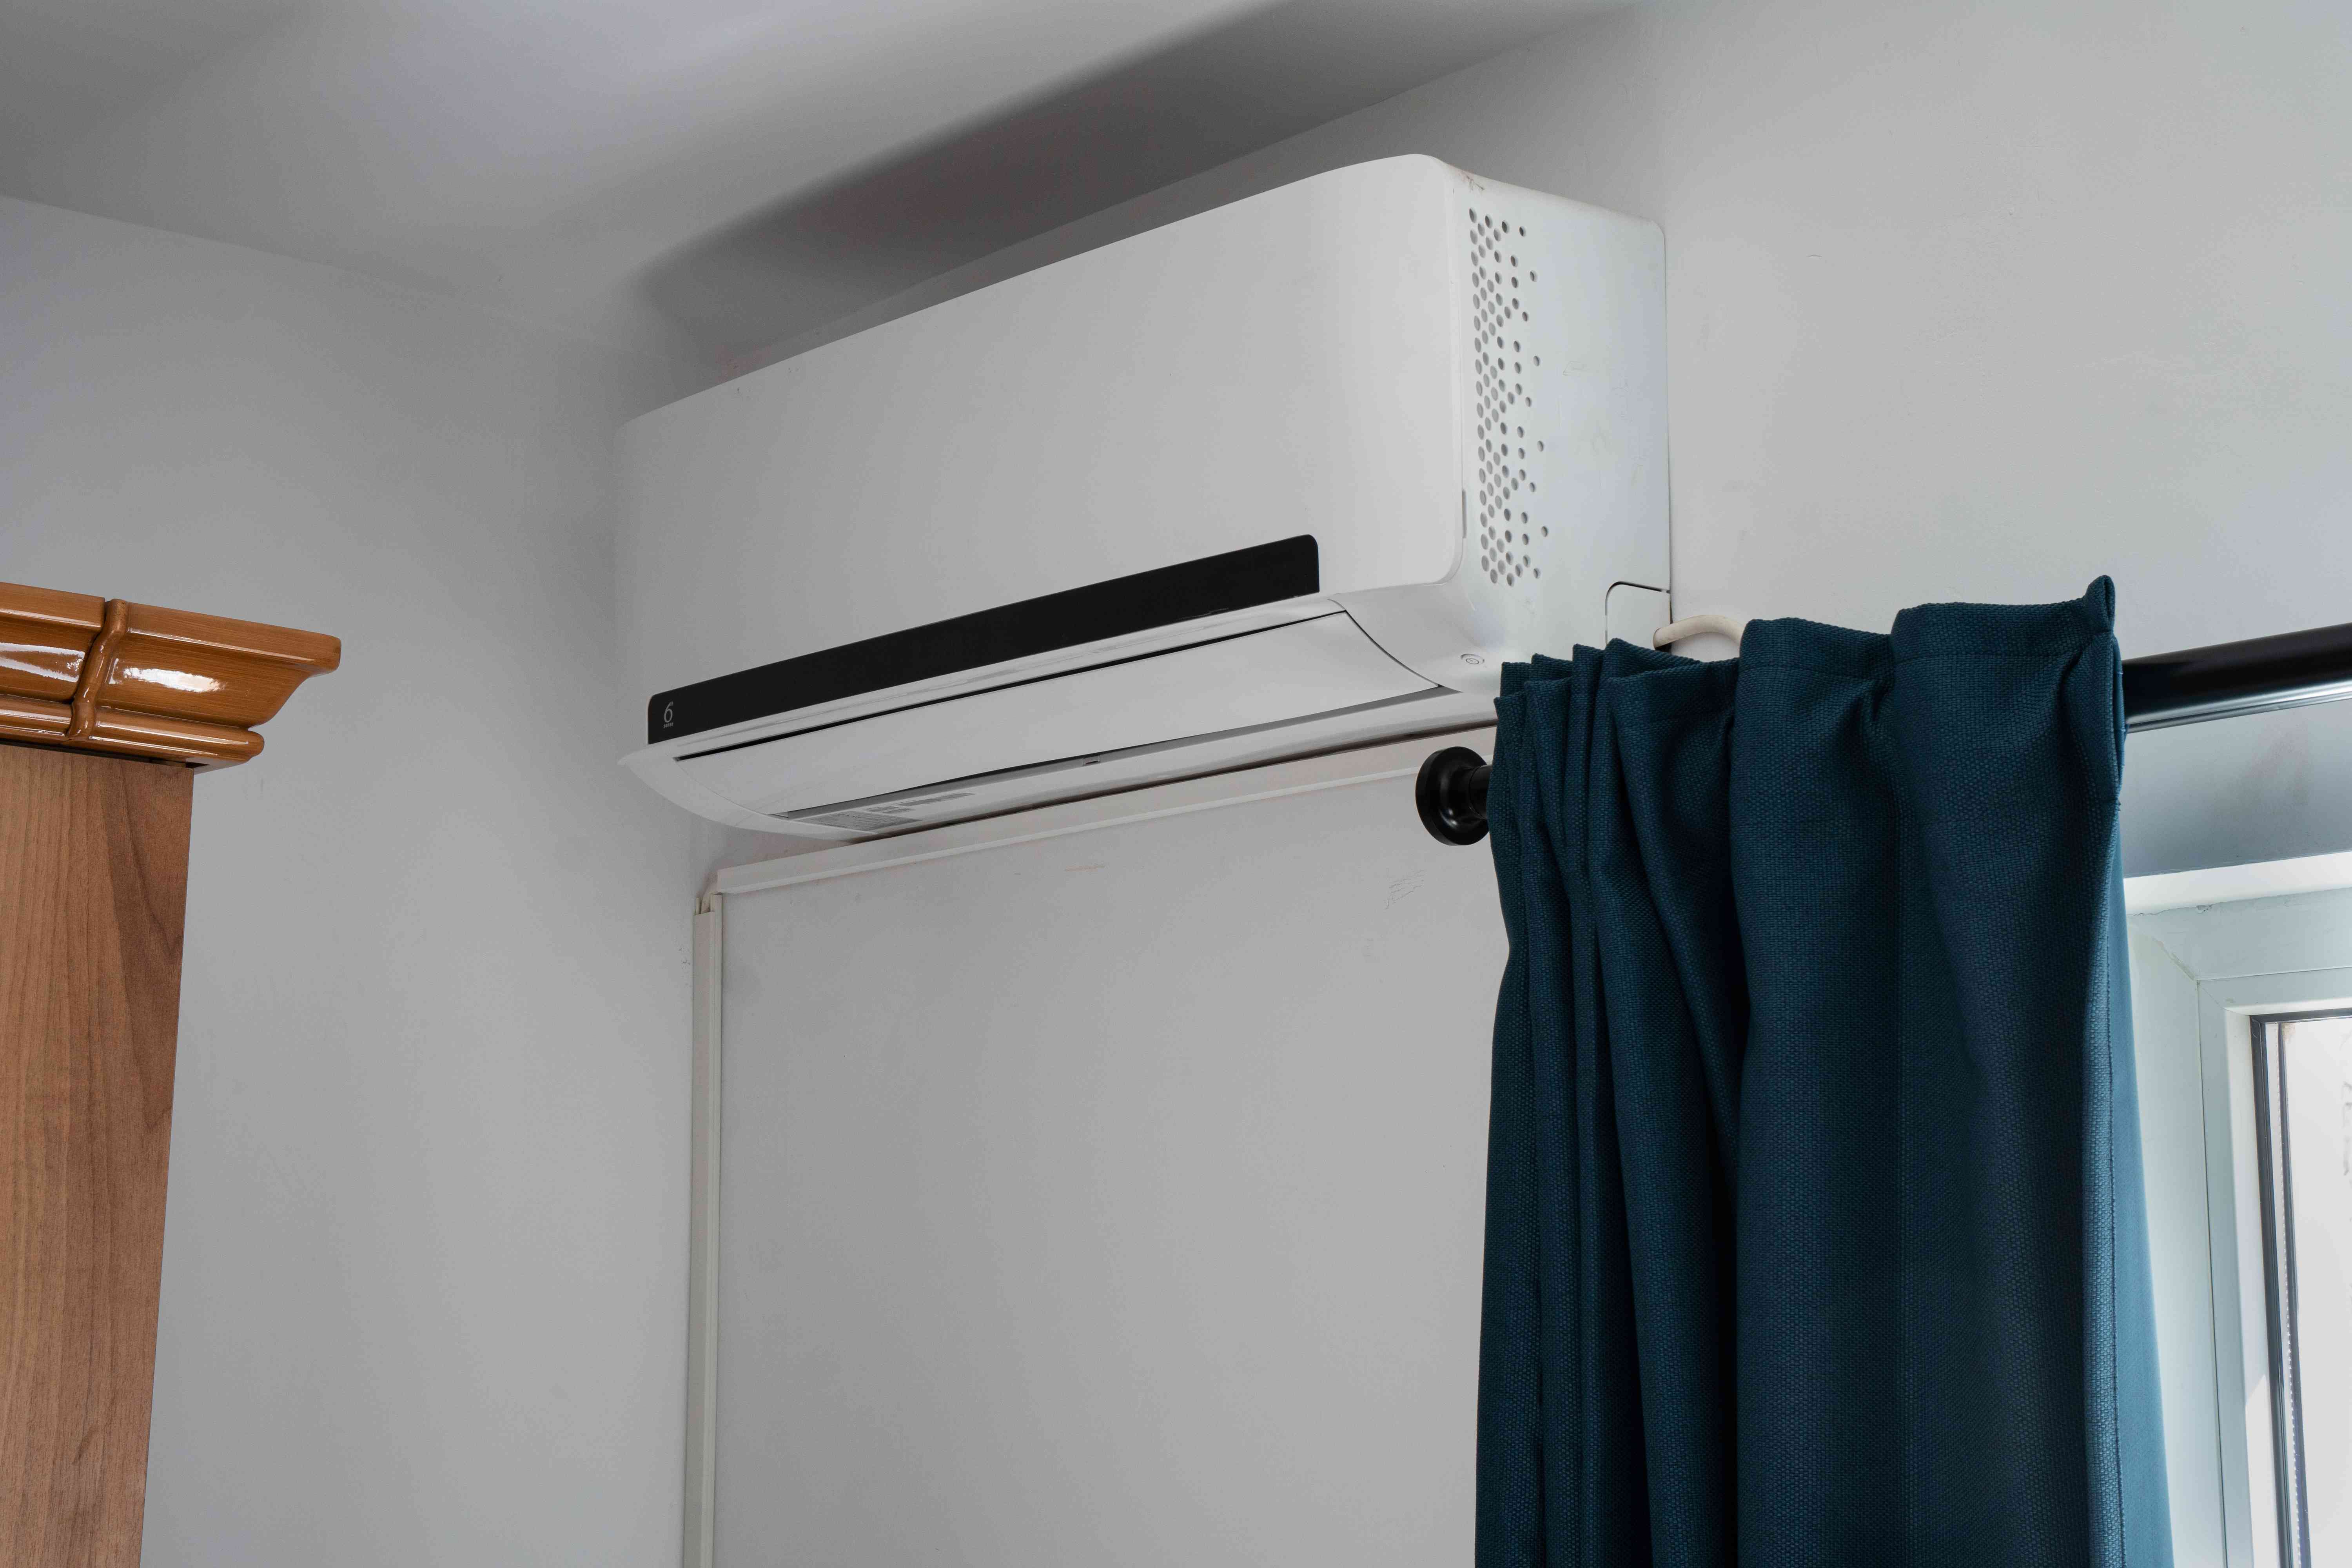 Shot of split air conditioning home unit on white wall near window with hanging curtain